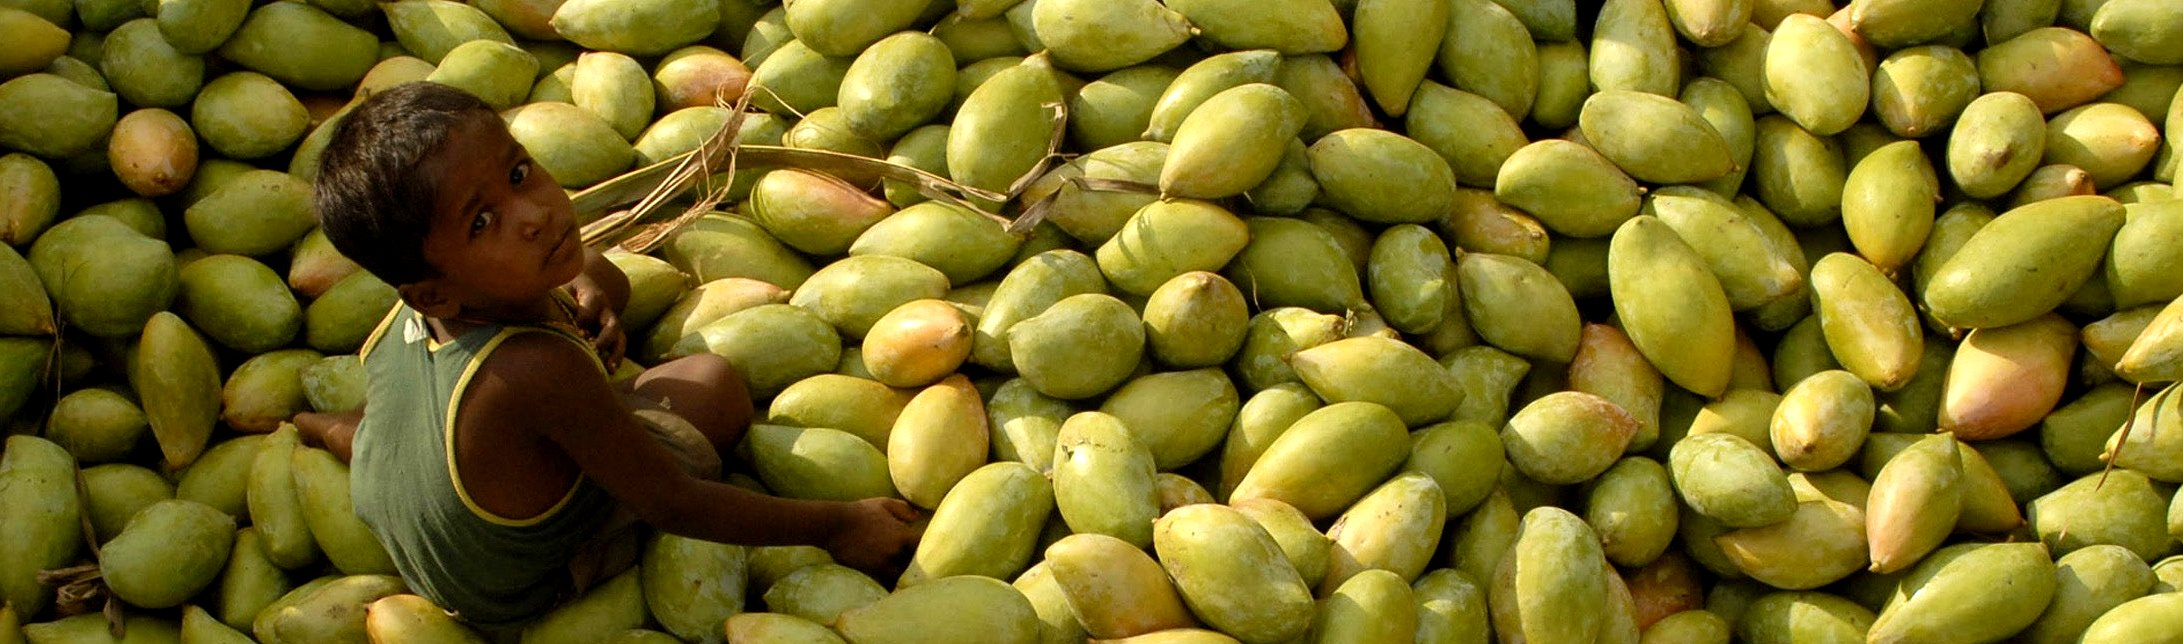 While first time travel in India, consider to eat ennough superfood - mango!